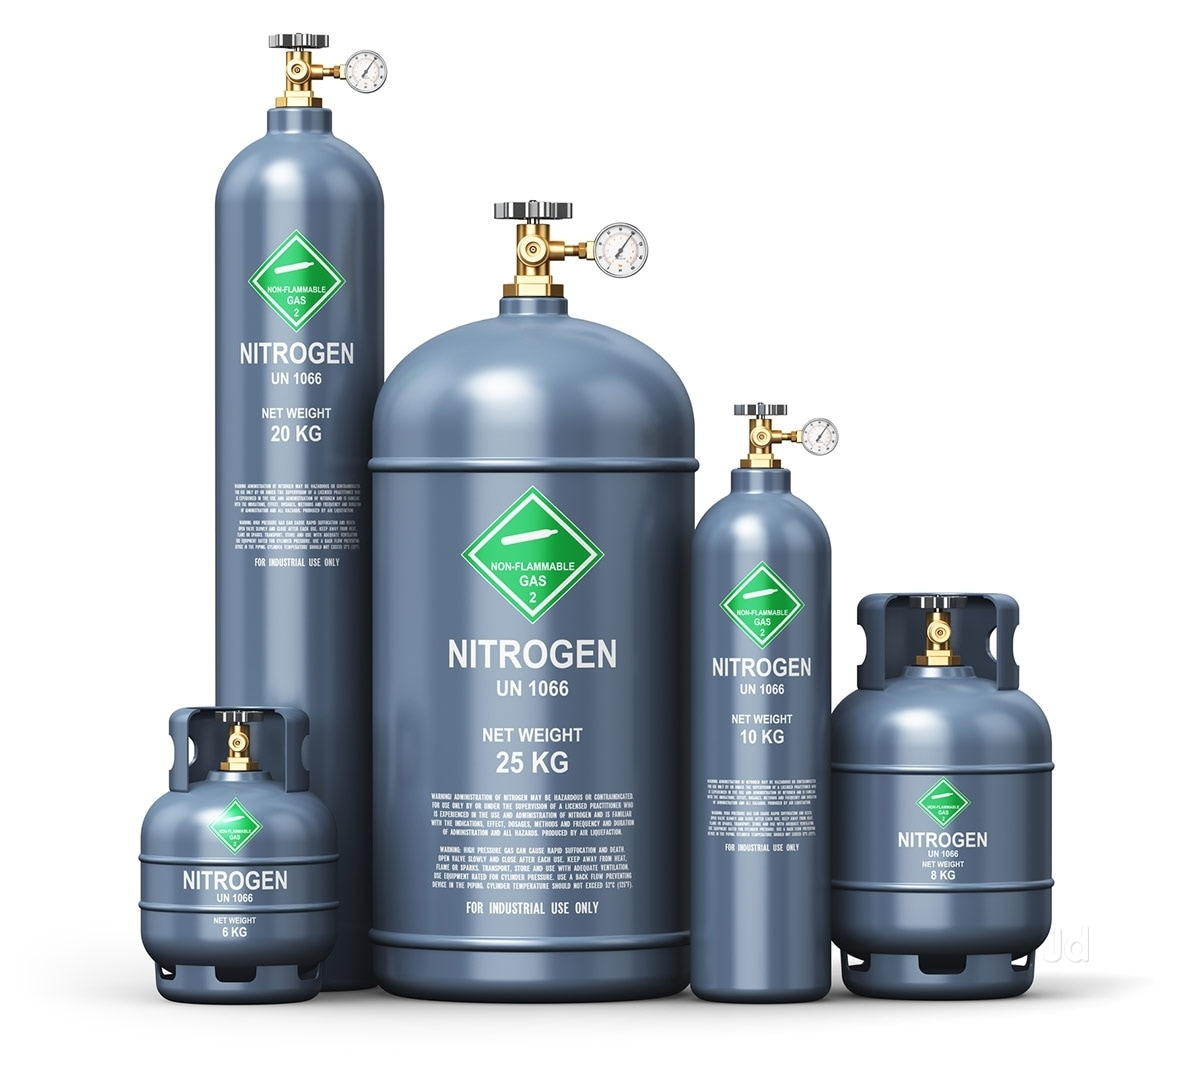 Top 50 Oxygen Gas Dealers in Talegaon Dabhade, Pune - Justdial